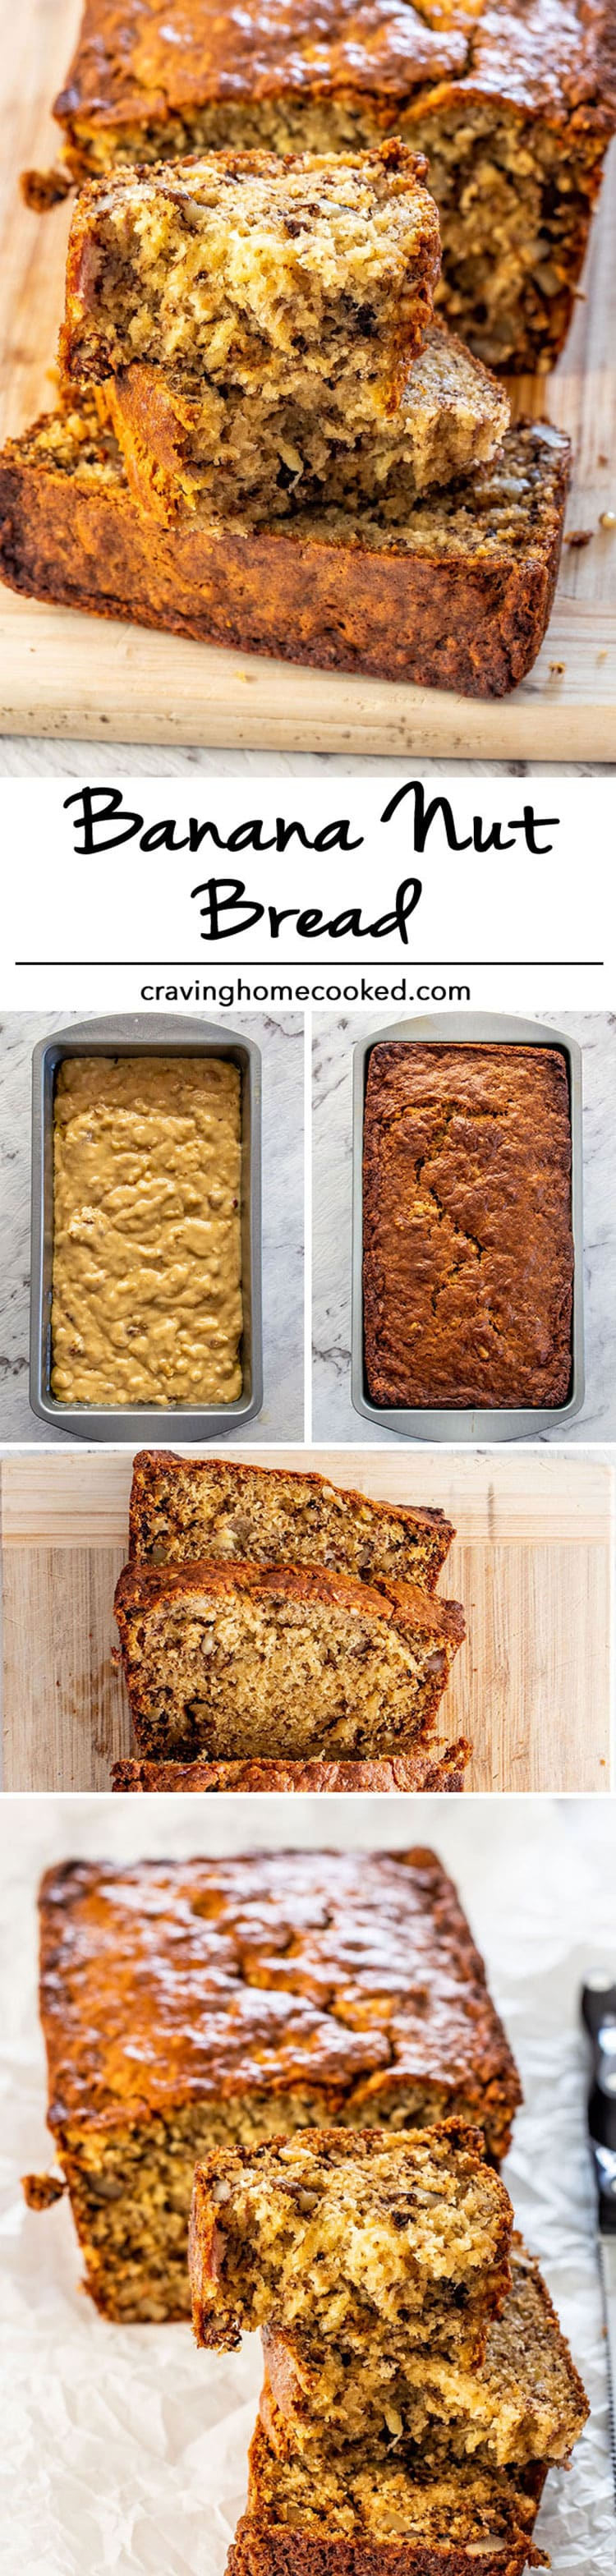 This is simply The Best Banana Nut Bread recipe out there! We're talking moist, delicious, perfectly sweetened and nutty. No mixer needed and quick and easy to make! #banananutbread #bananabread #bananas